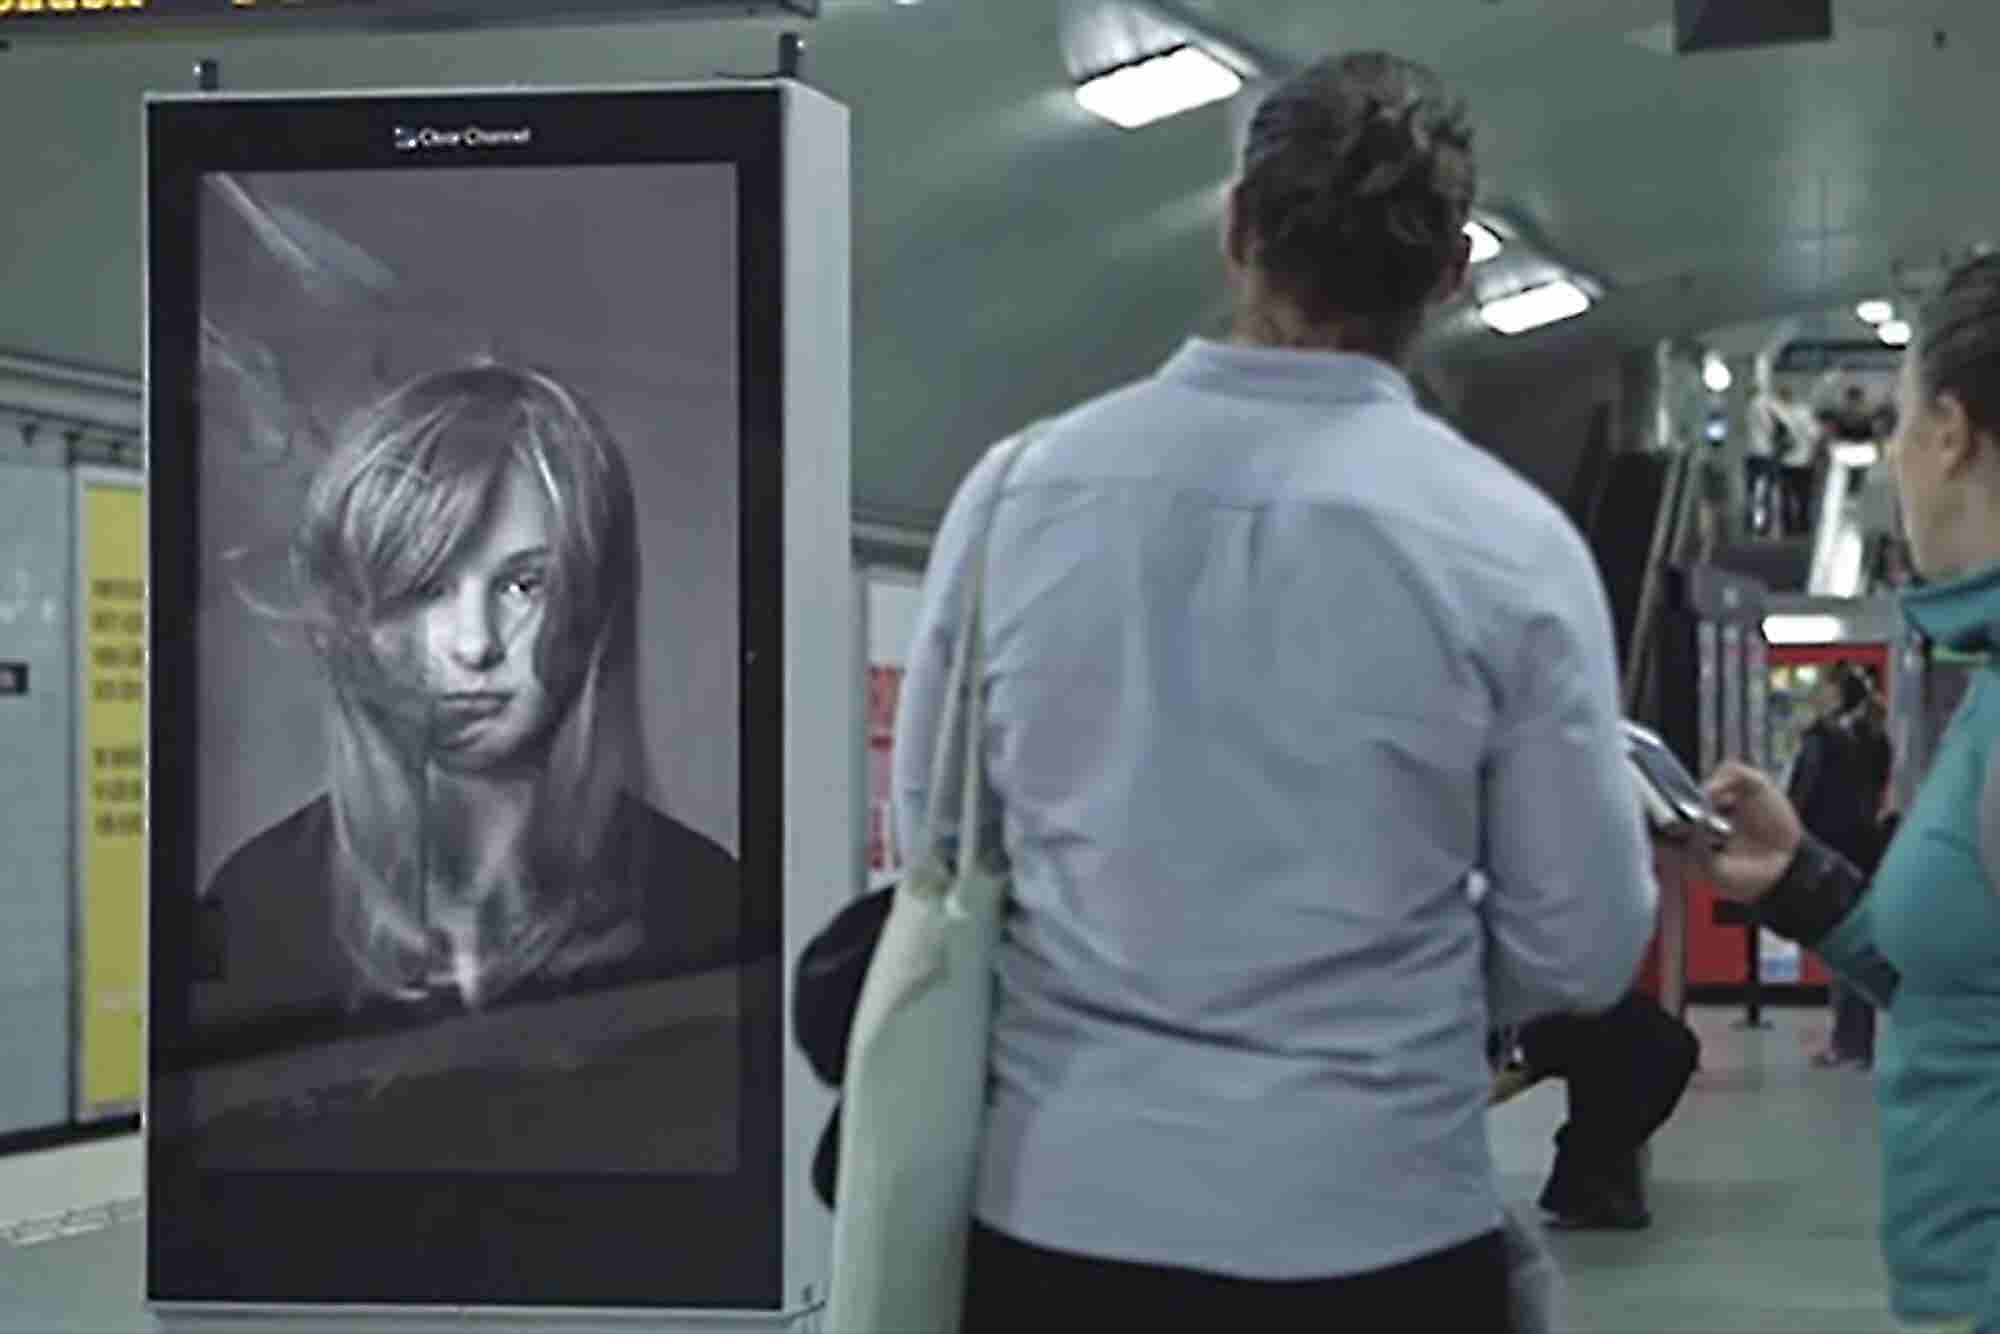 How These Brilliant Digital Billboards Are Delivering a Hair-Raising Message